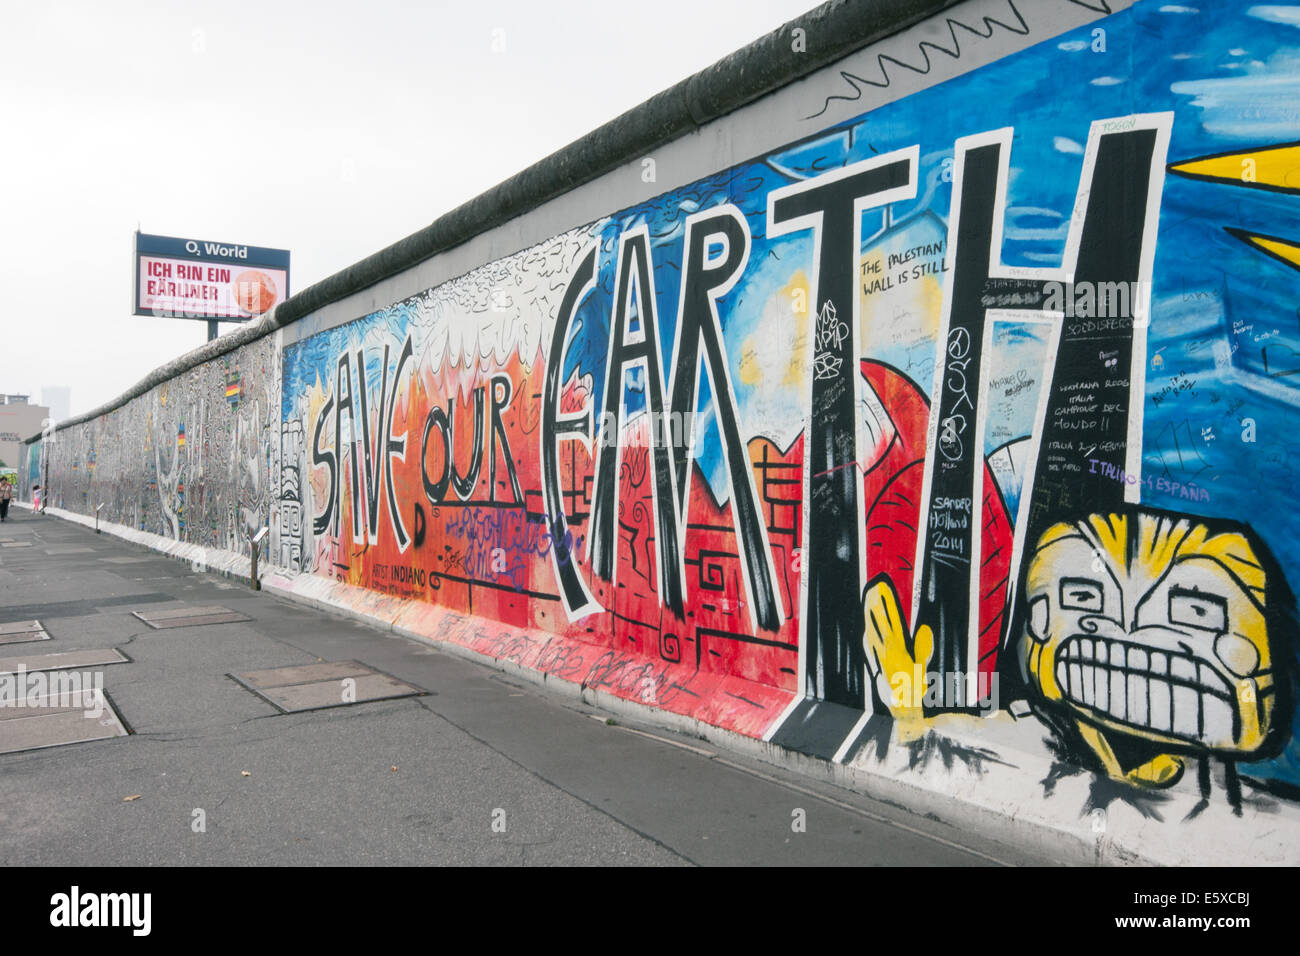 Save our earth artwork on berlin wall at east side gallery beneath an o2 advertisement screen